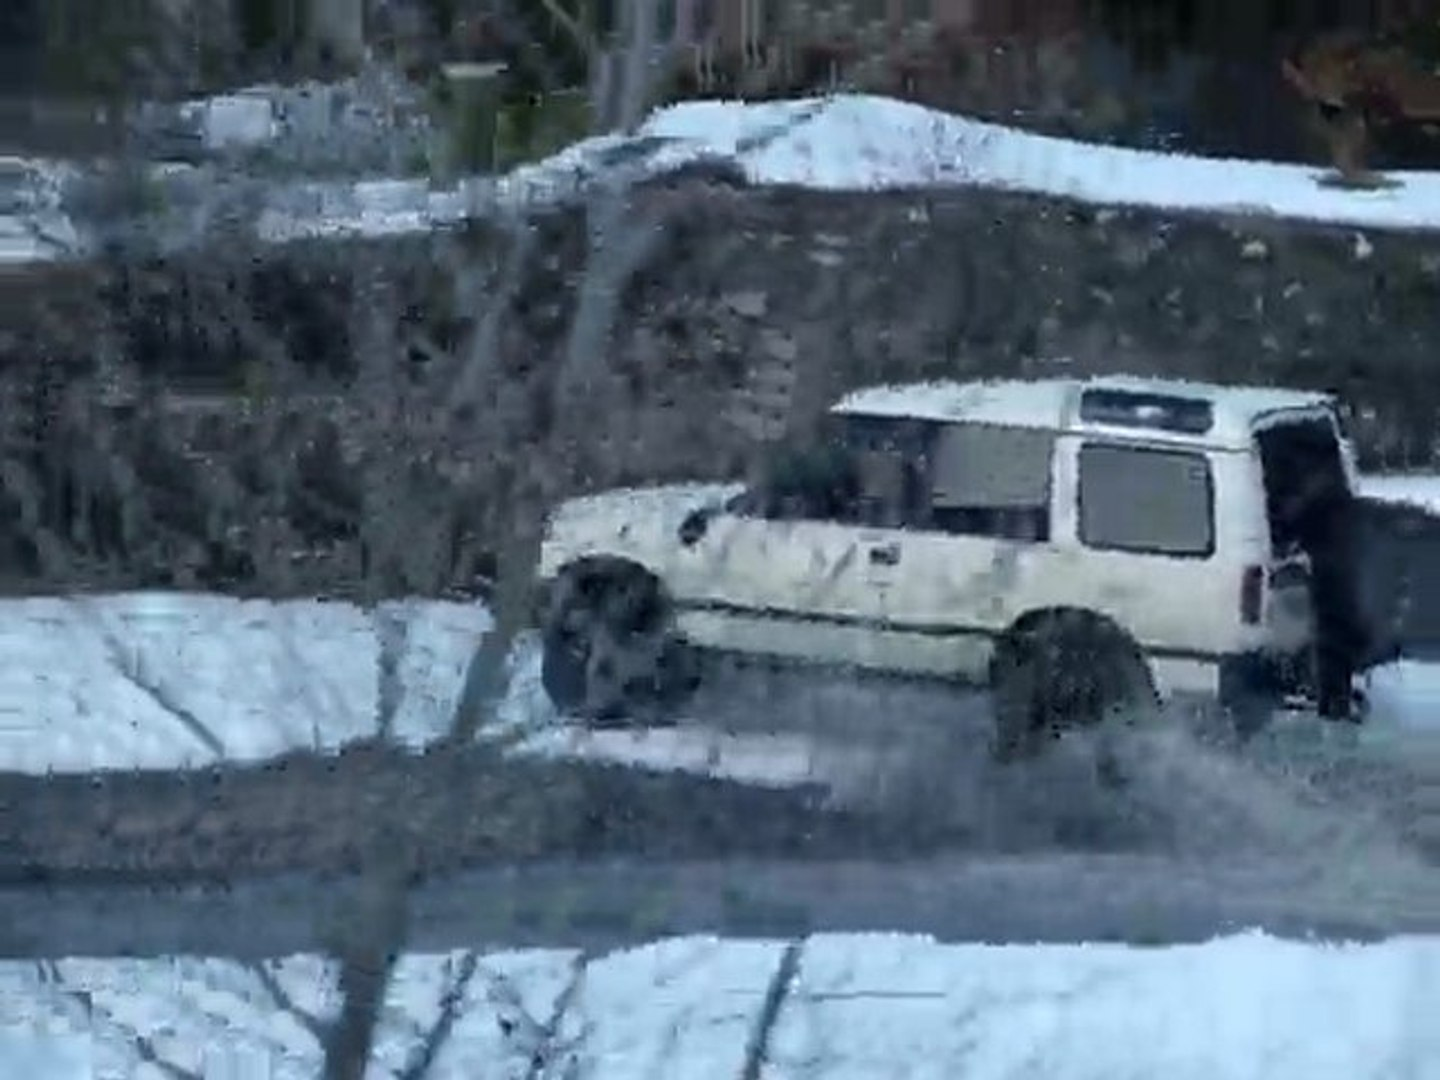 4x4 discovery a l'action